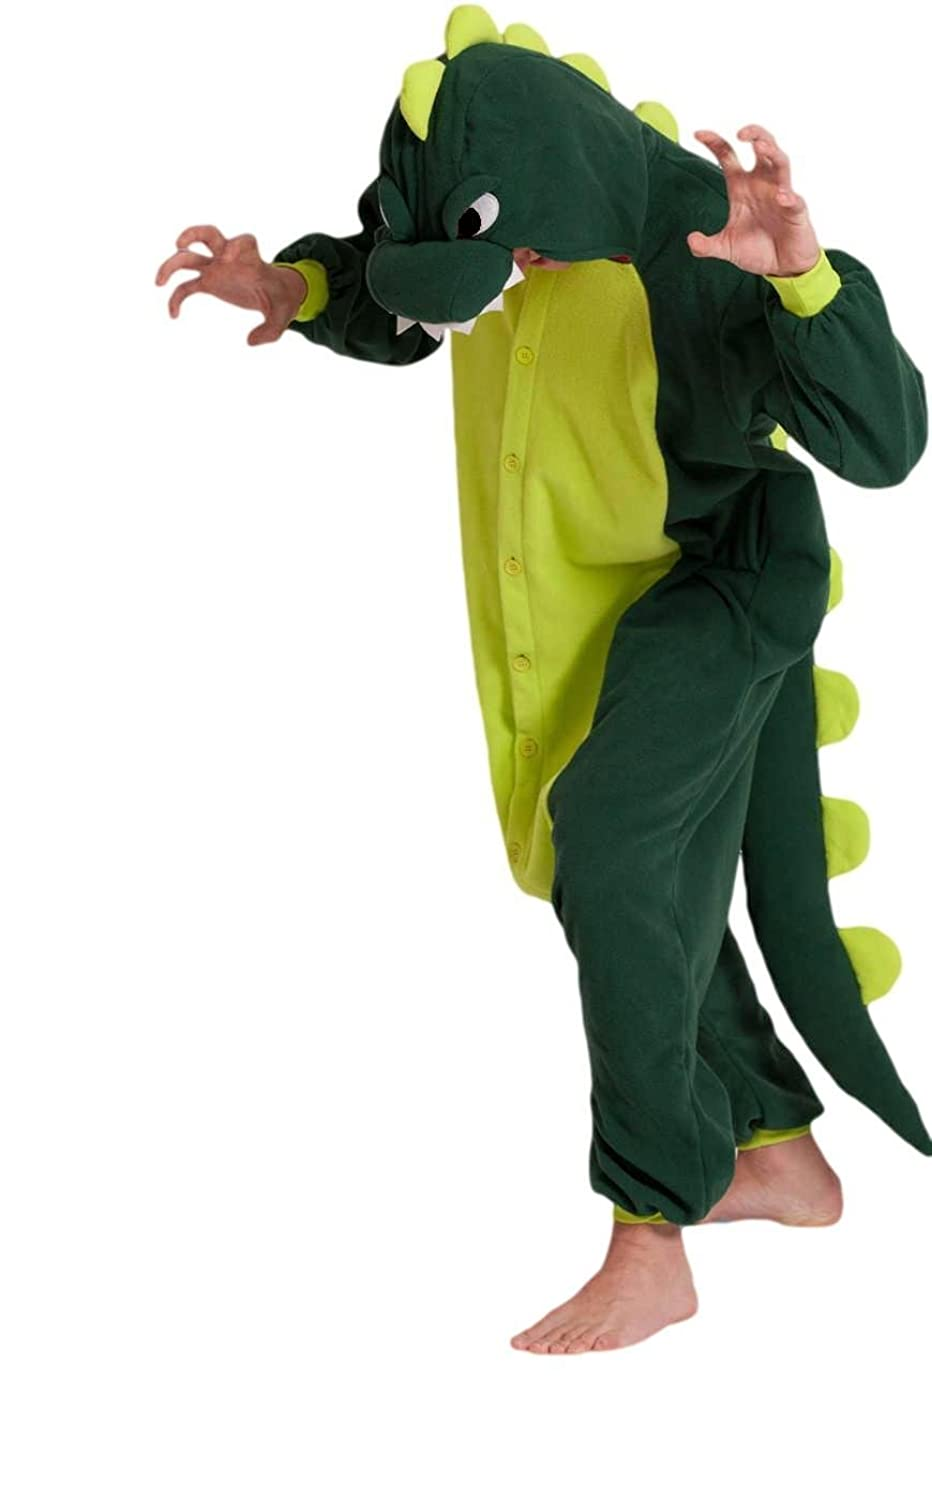 OFFICIAL CLUBCORSETS ANIMAL PYJAMA ONESIE- FLUFFY FUN! IDEAL UNISEX XMAS PRESSIE ALL SIZES S, M, L, XL (L 170-180 CM ( HEIGHT 5'6~5'10 ), GREEN DINOSAUR)